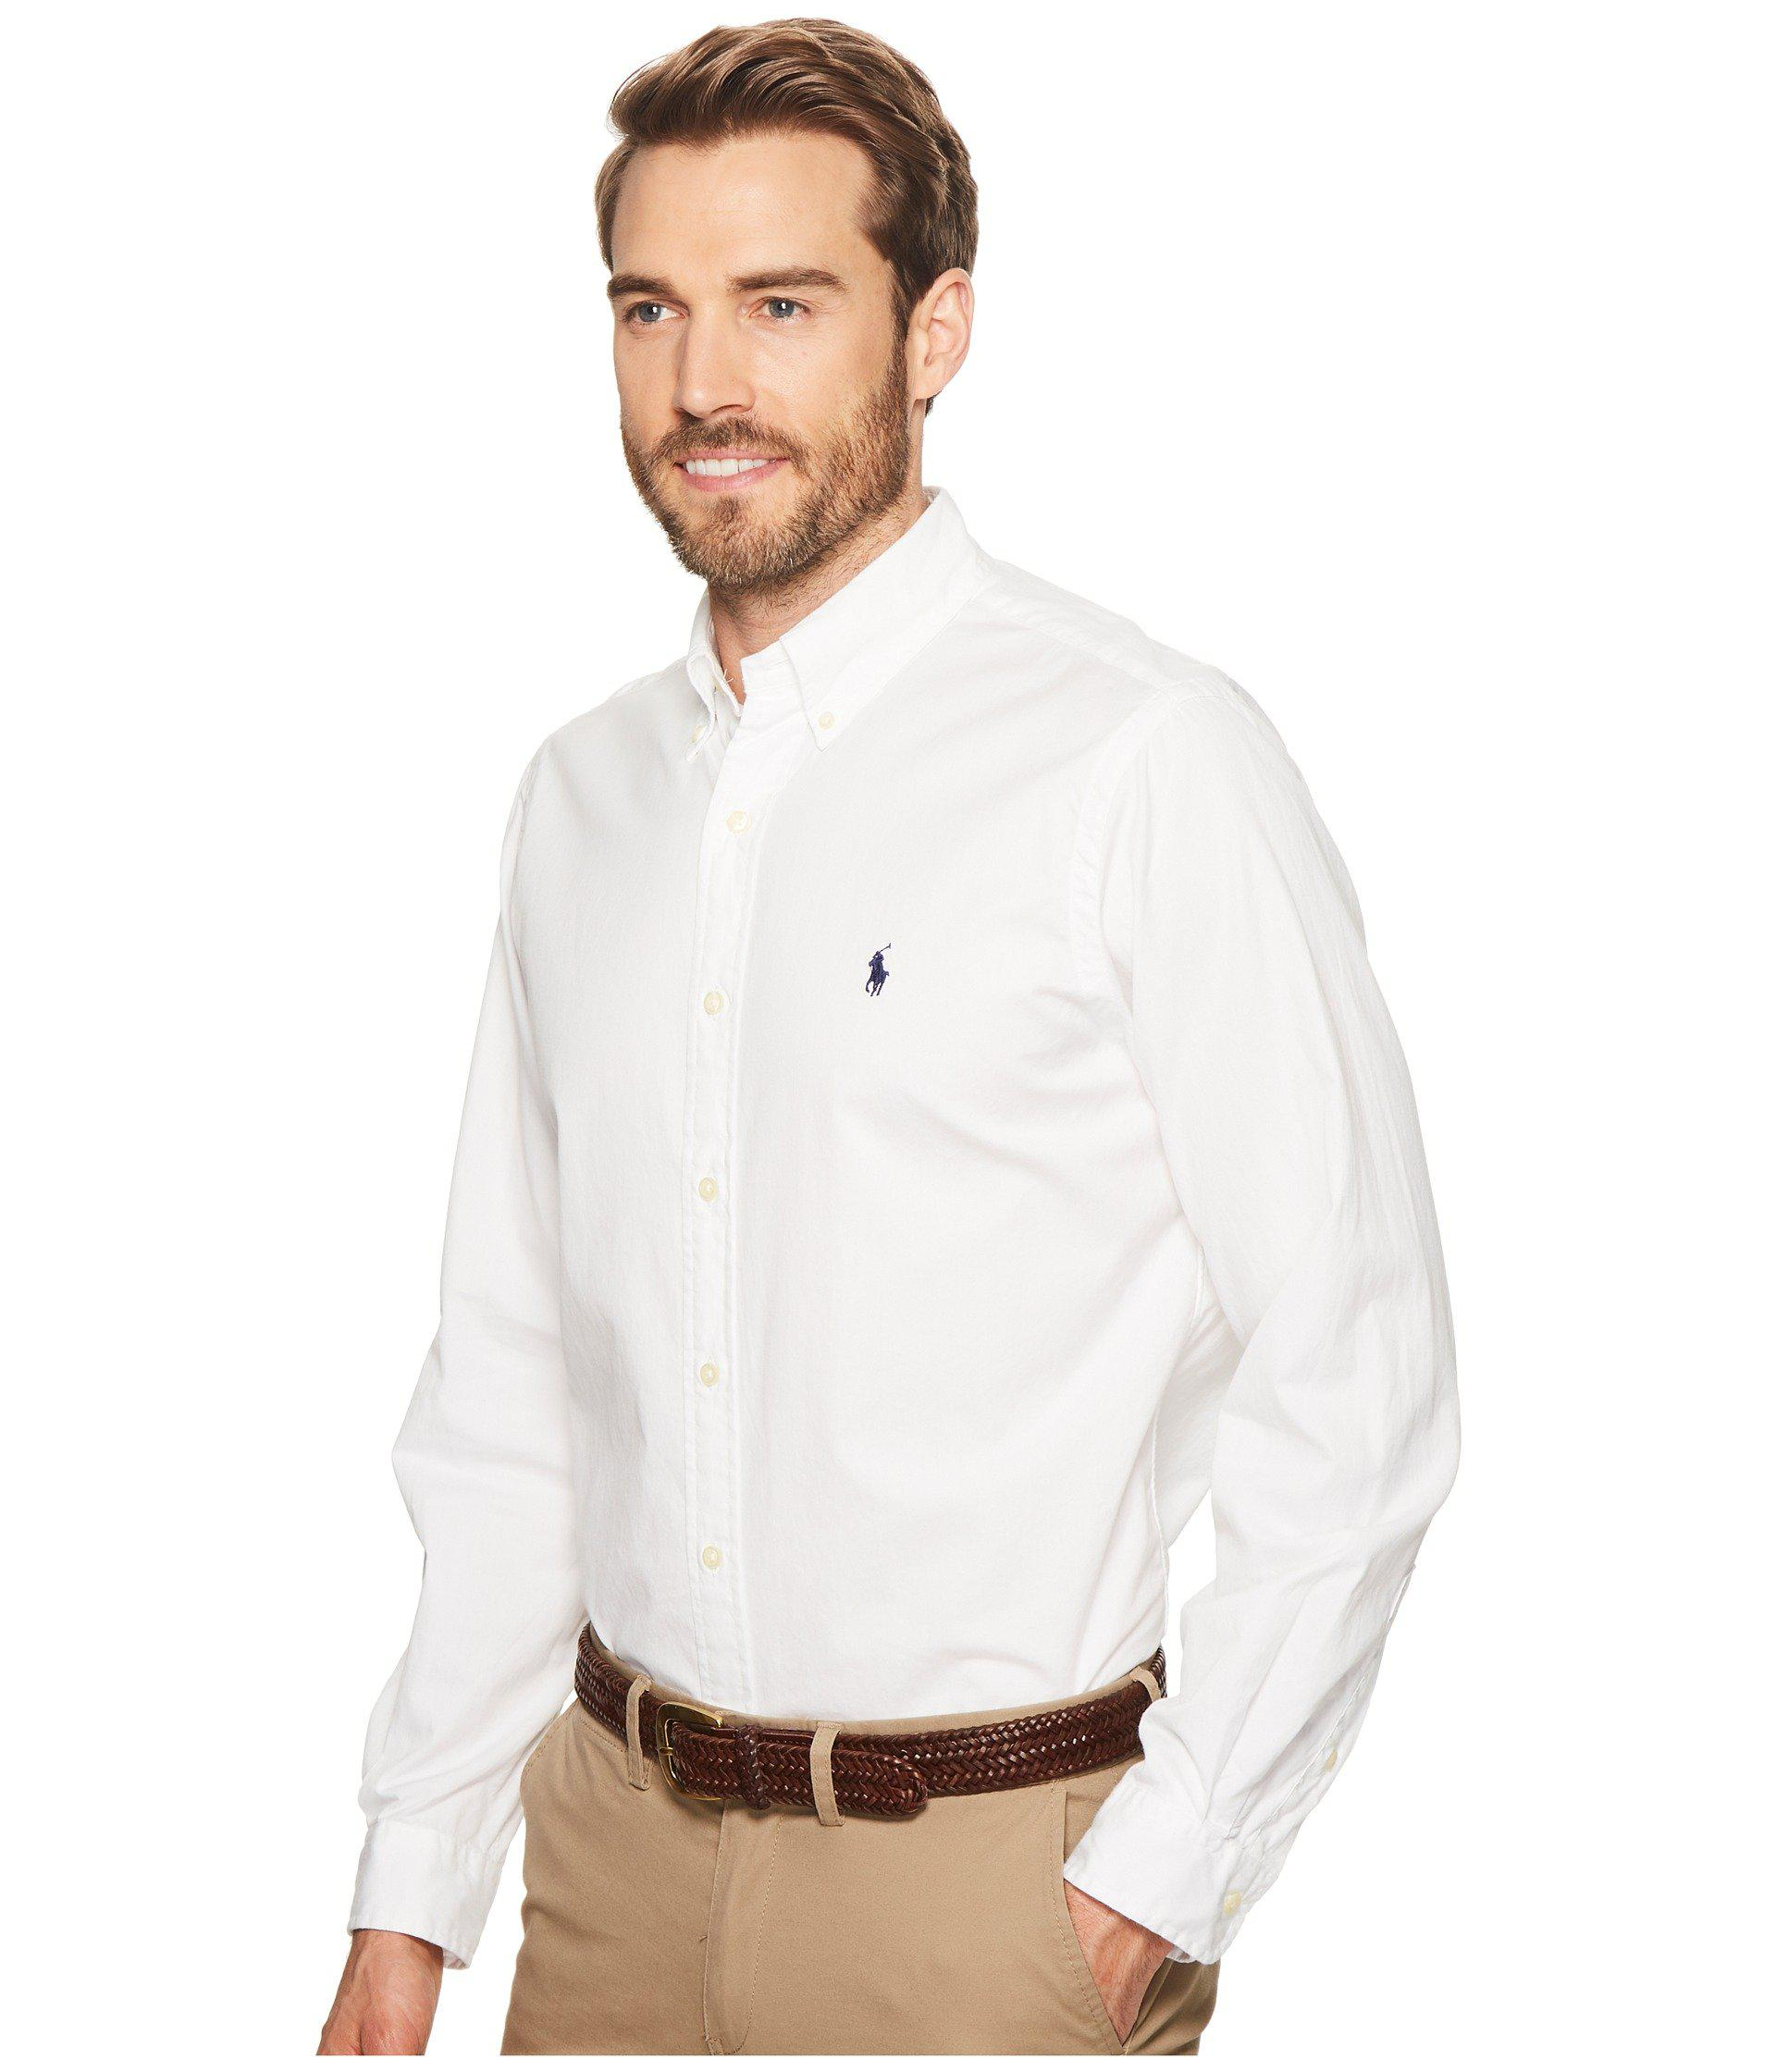 7aec16c80f4 ... discount lyst polo ralph lauren gd chino long sleeve sport shirt in  white 64555 8d9bb